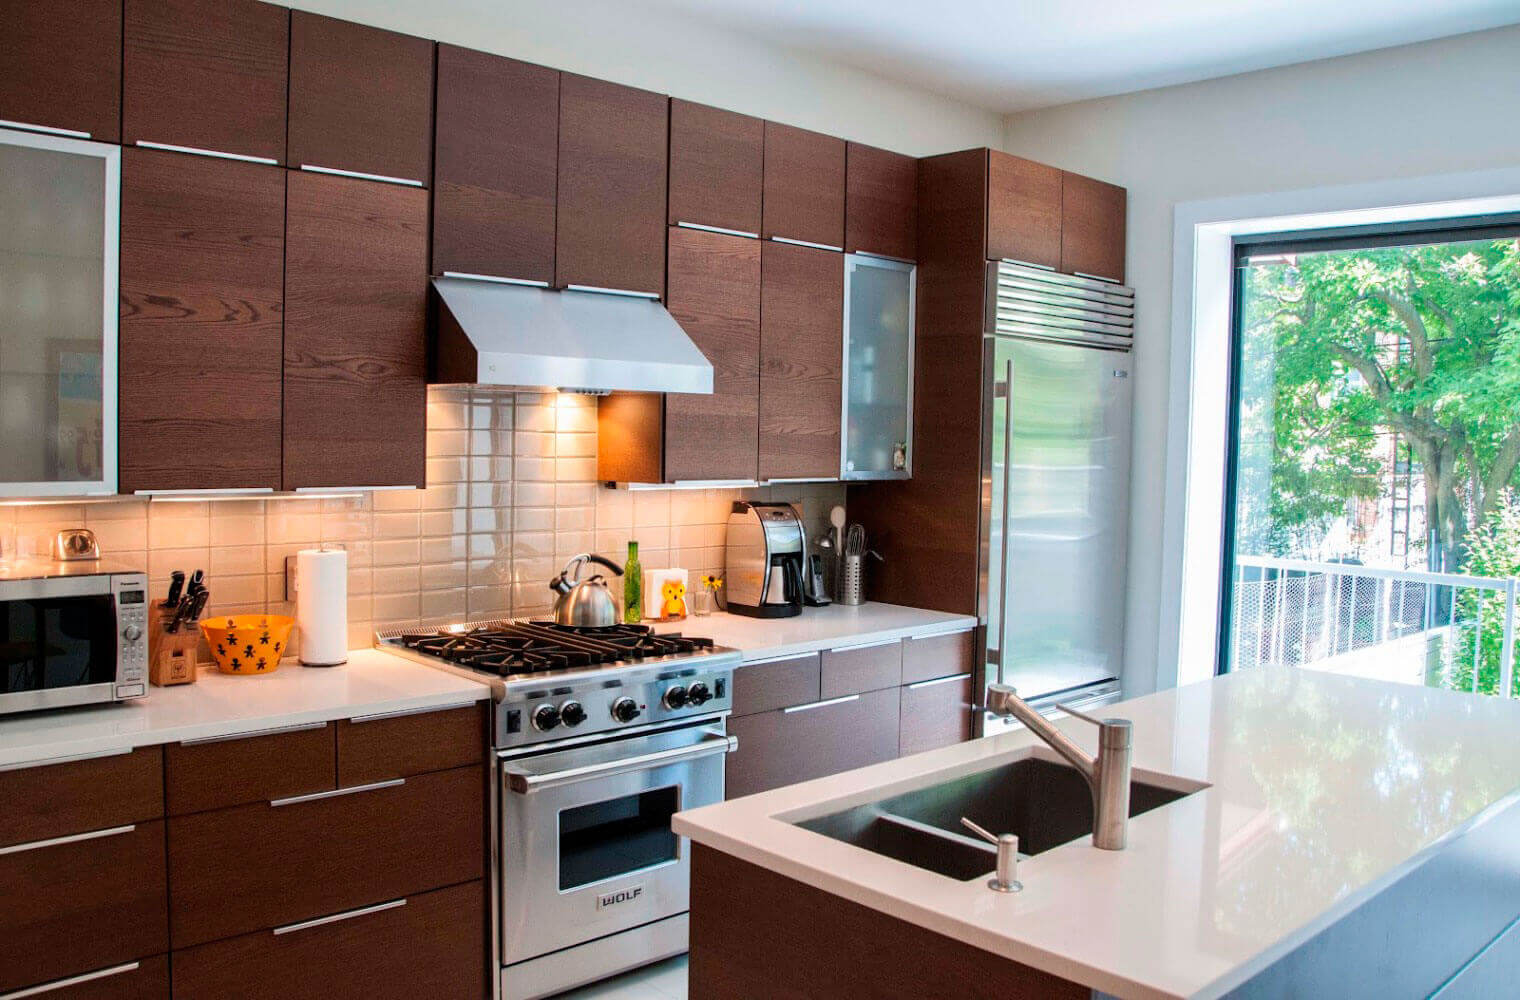 89 contemporary kitchen design ideas gallery for Sleek modern kitchen cabinets